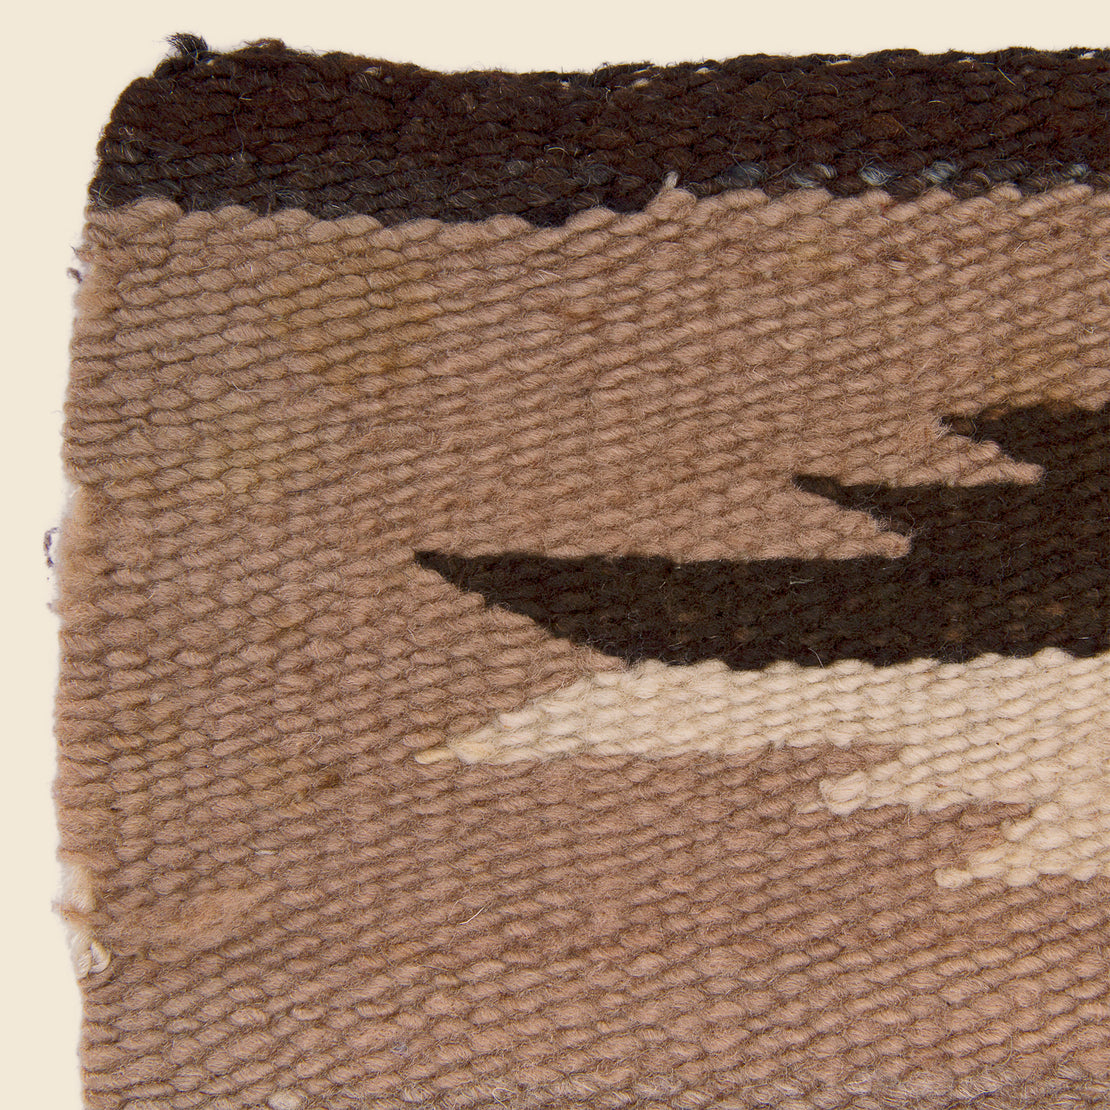 Small Woven Native American Textile #3